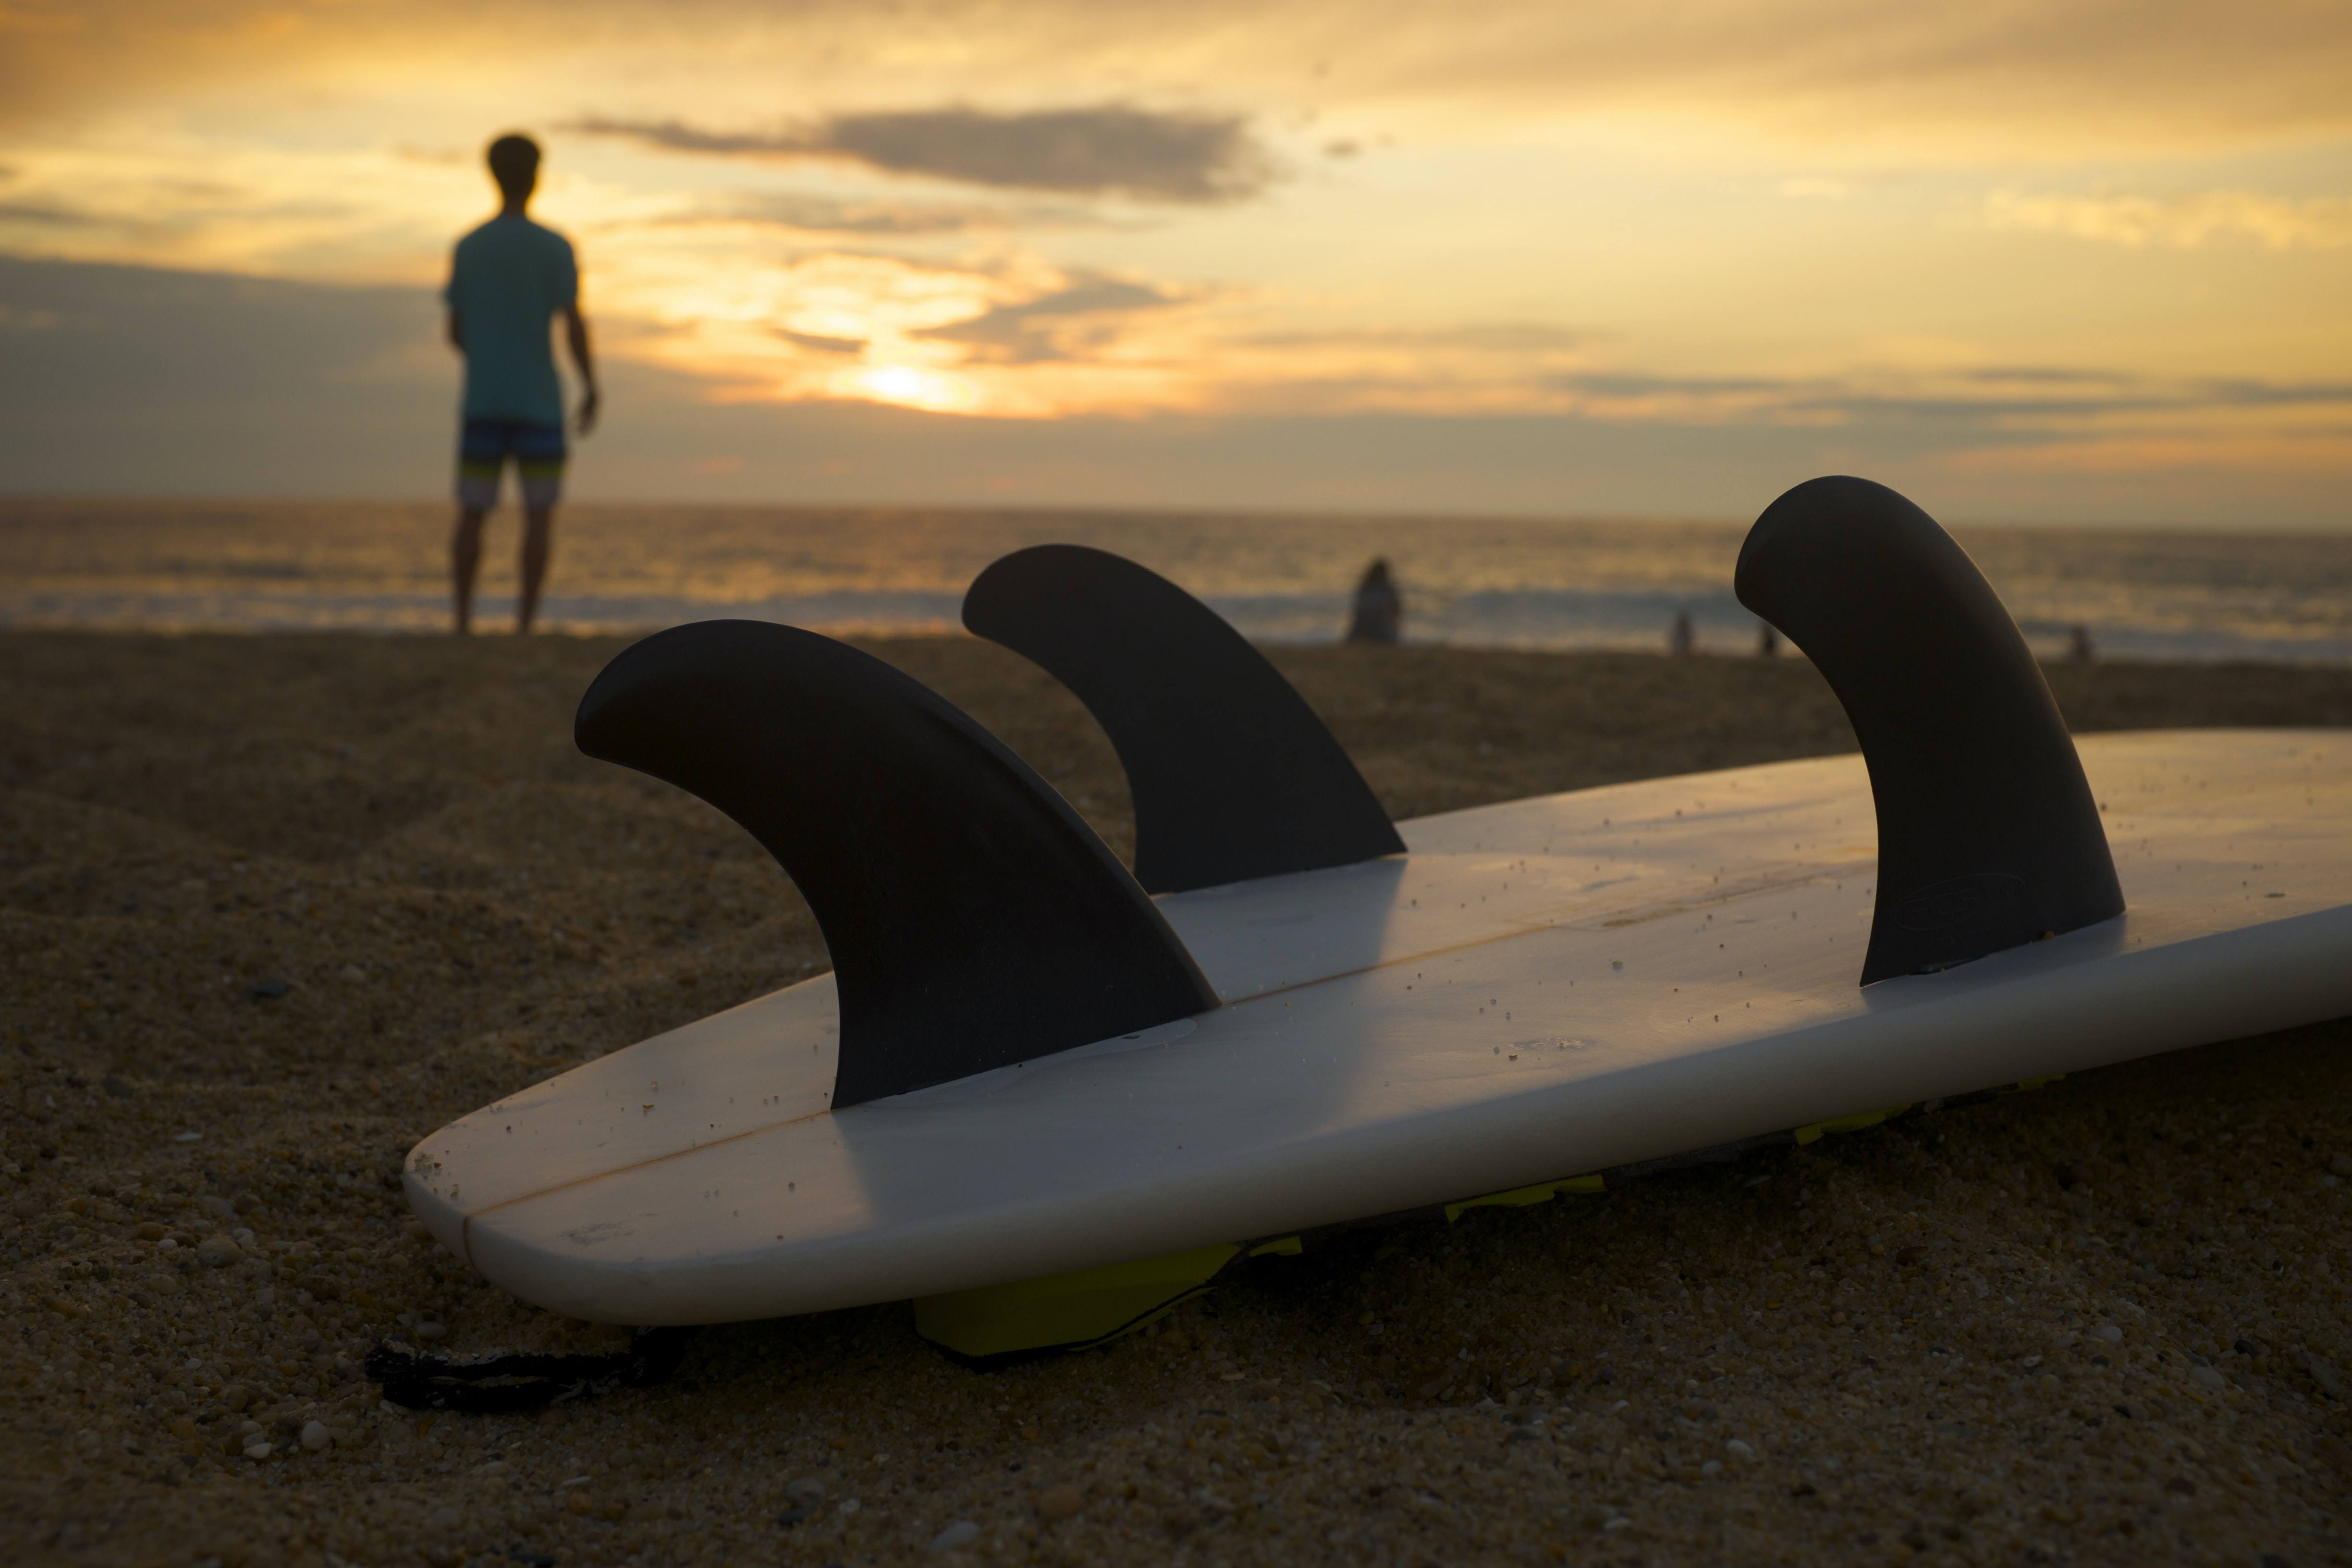 Surfboard fins on the sand beach during sunset